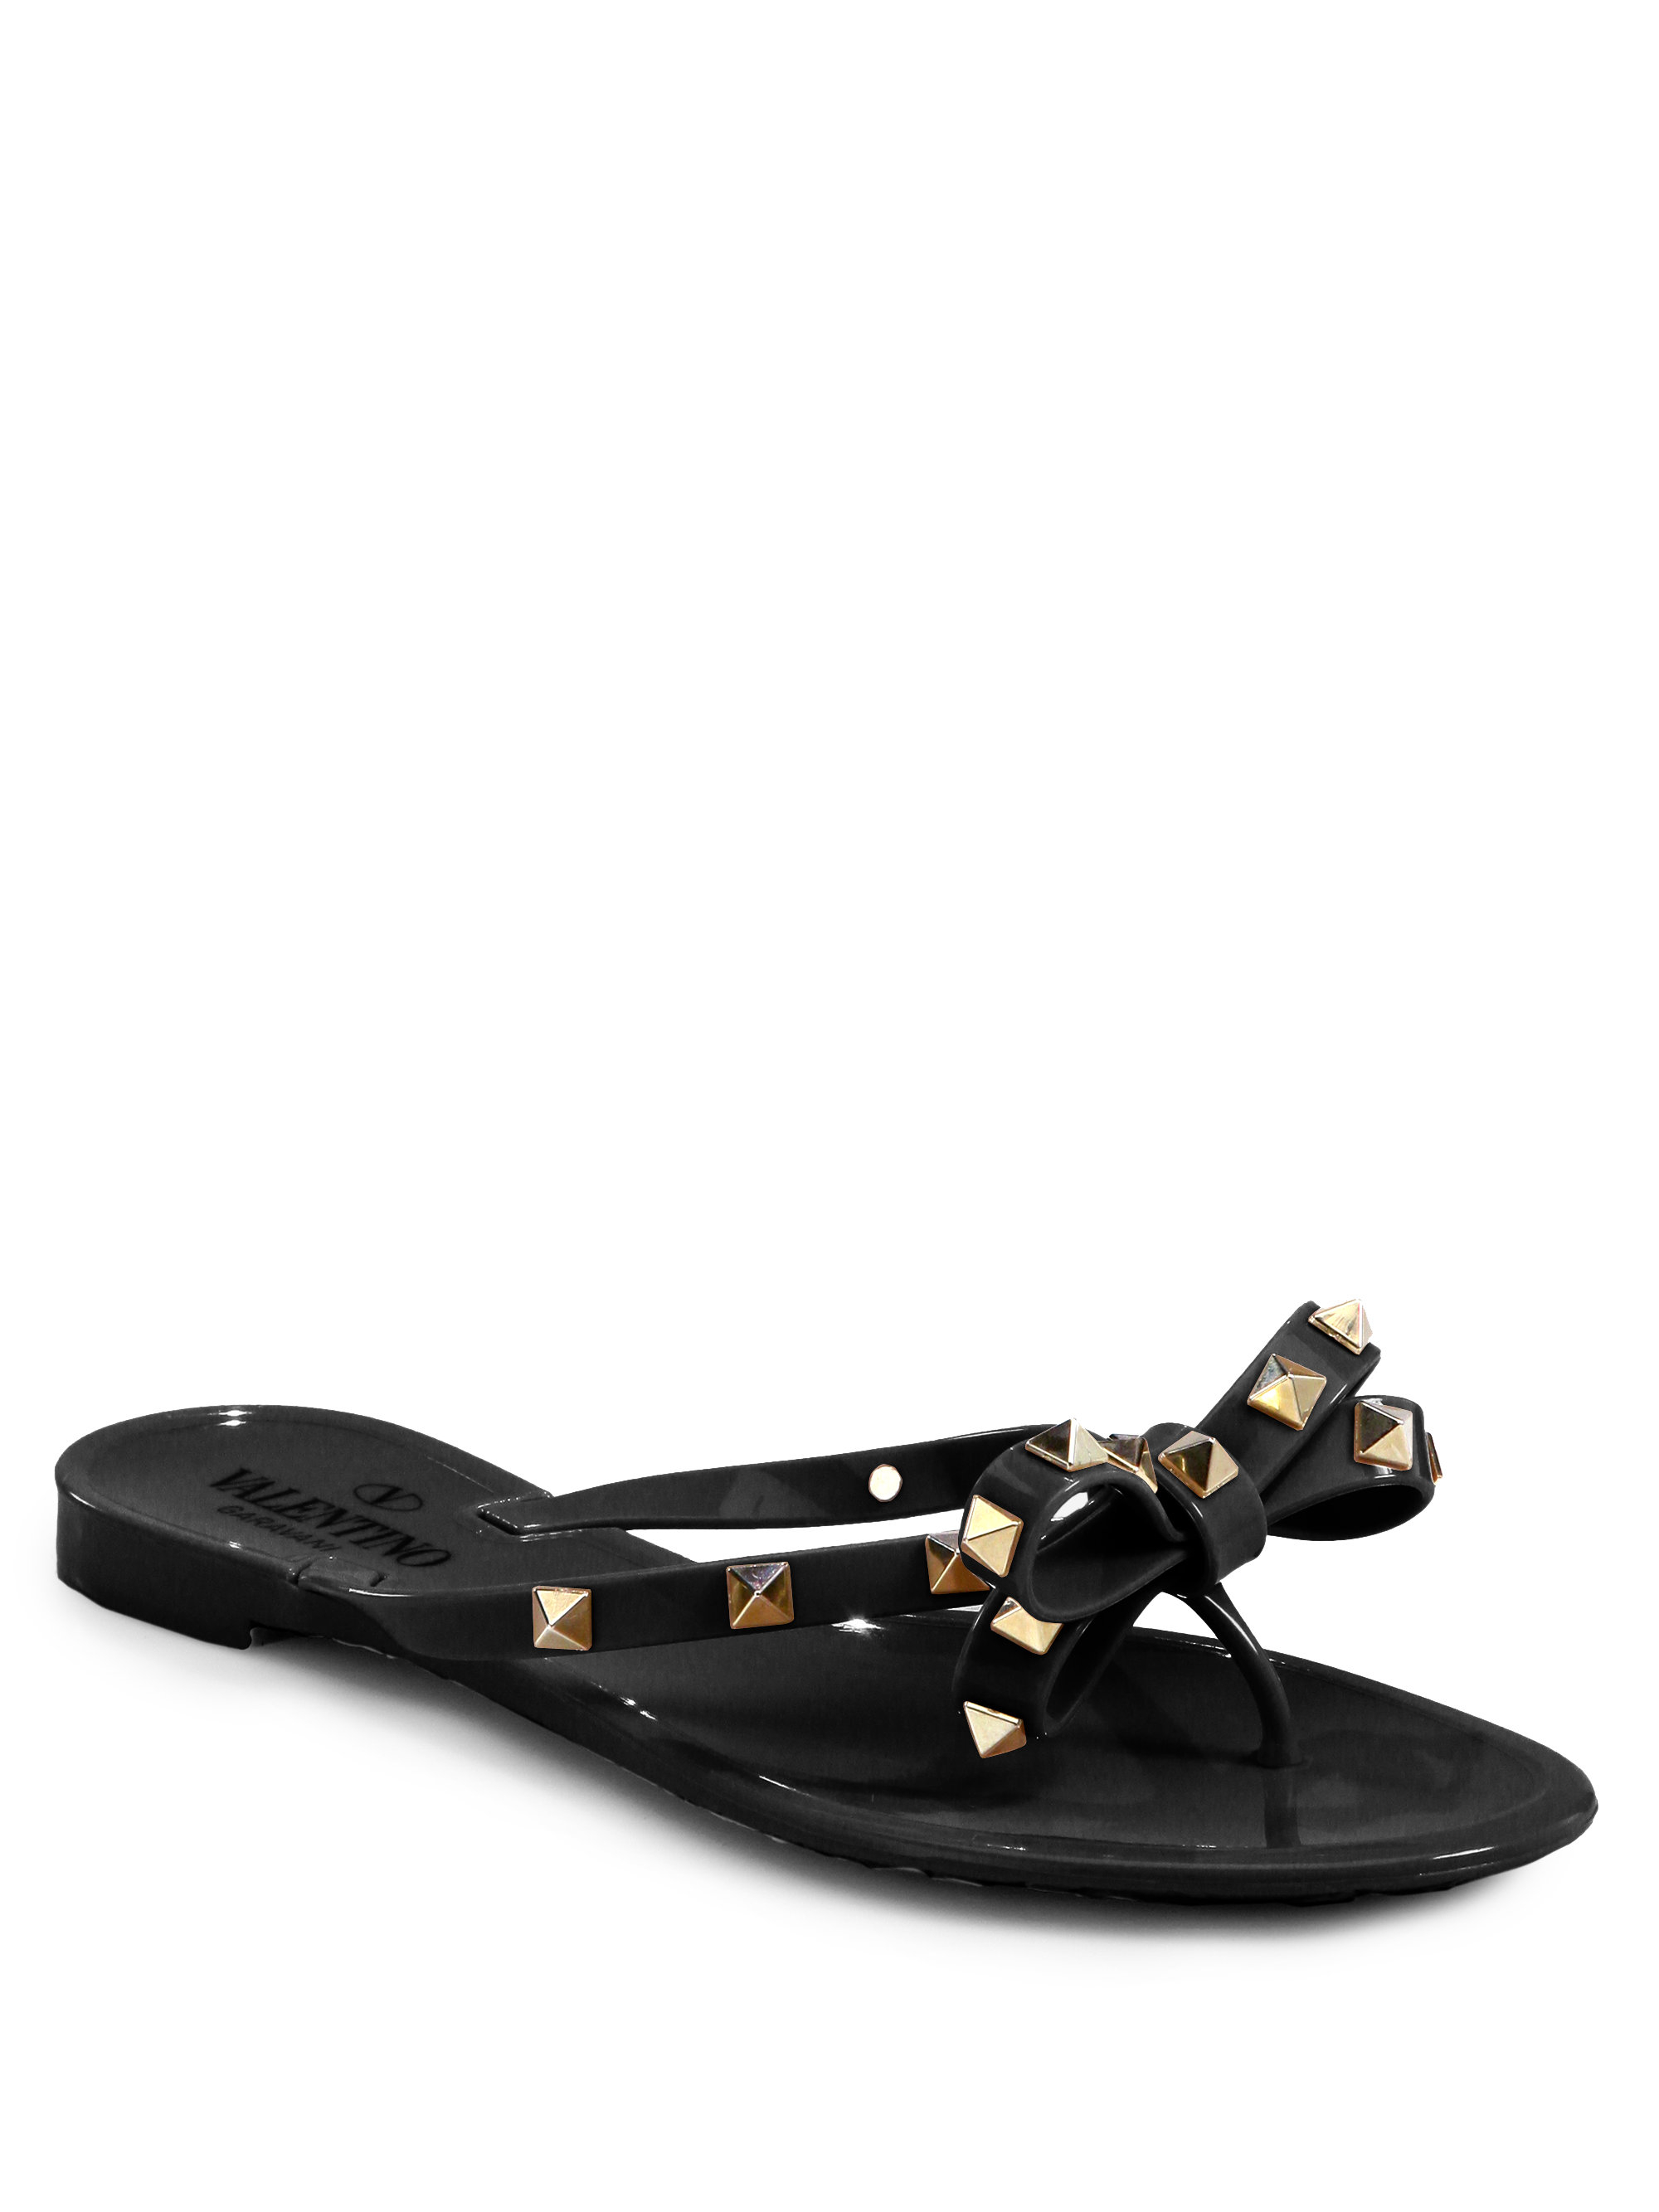 lyst valentino rockstud pvc flip flops in black. Black Bedroom Furniture Sets. Home Design Ideas